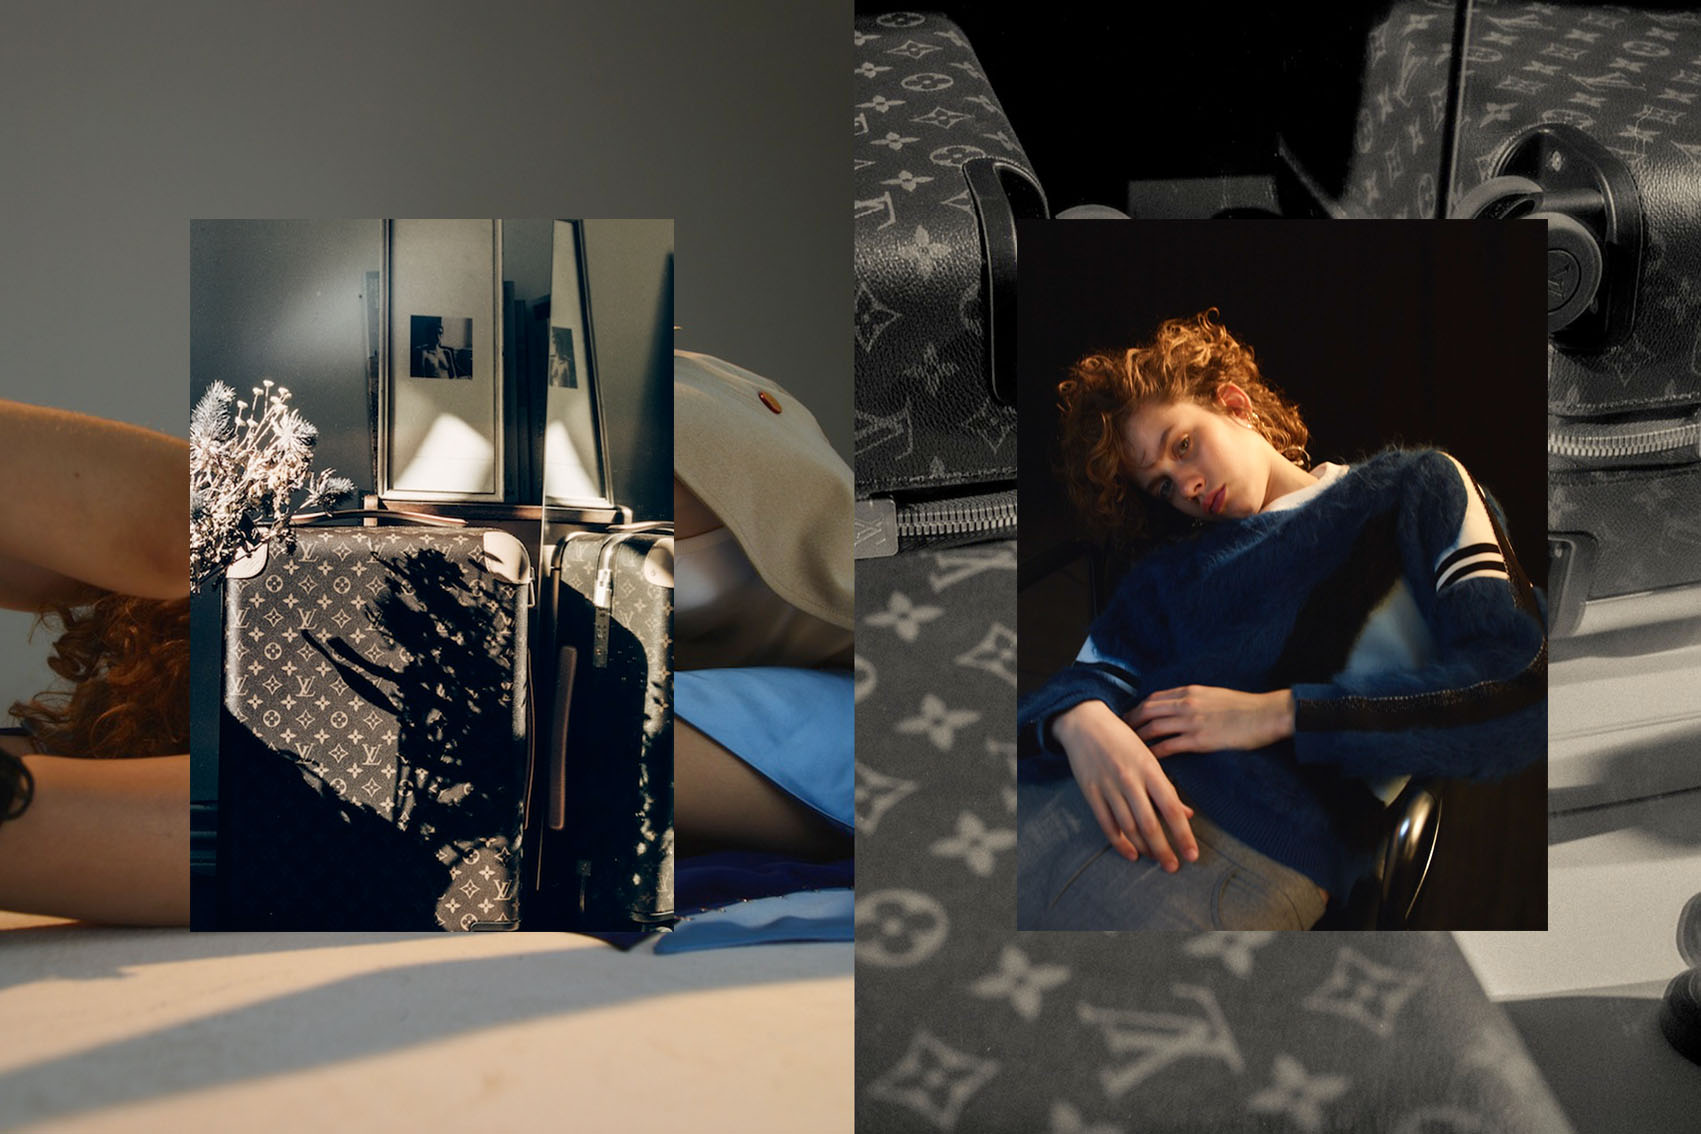 Images from SLEEK issue 51, courtesy of David Bornscheuer and Stefan Dotter.